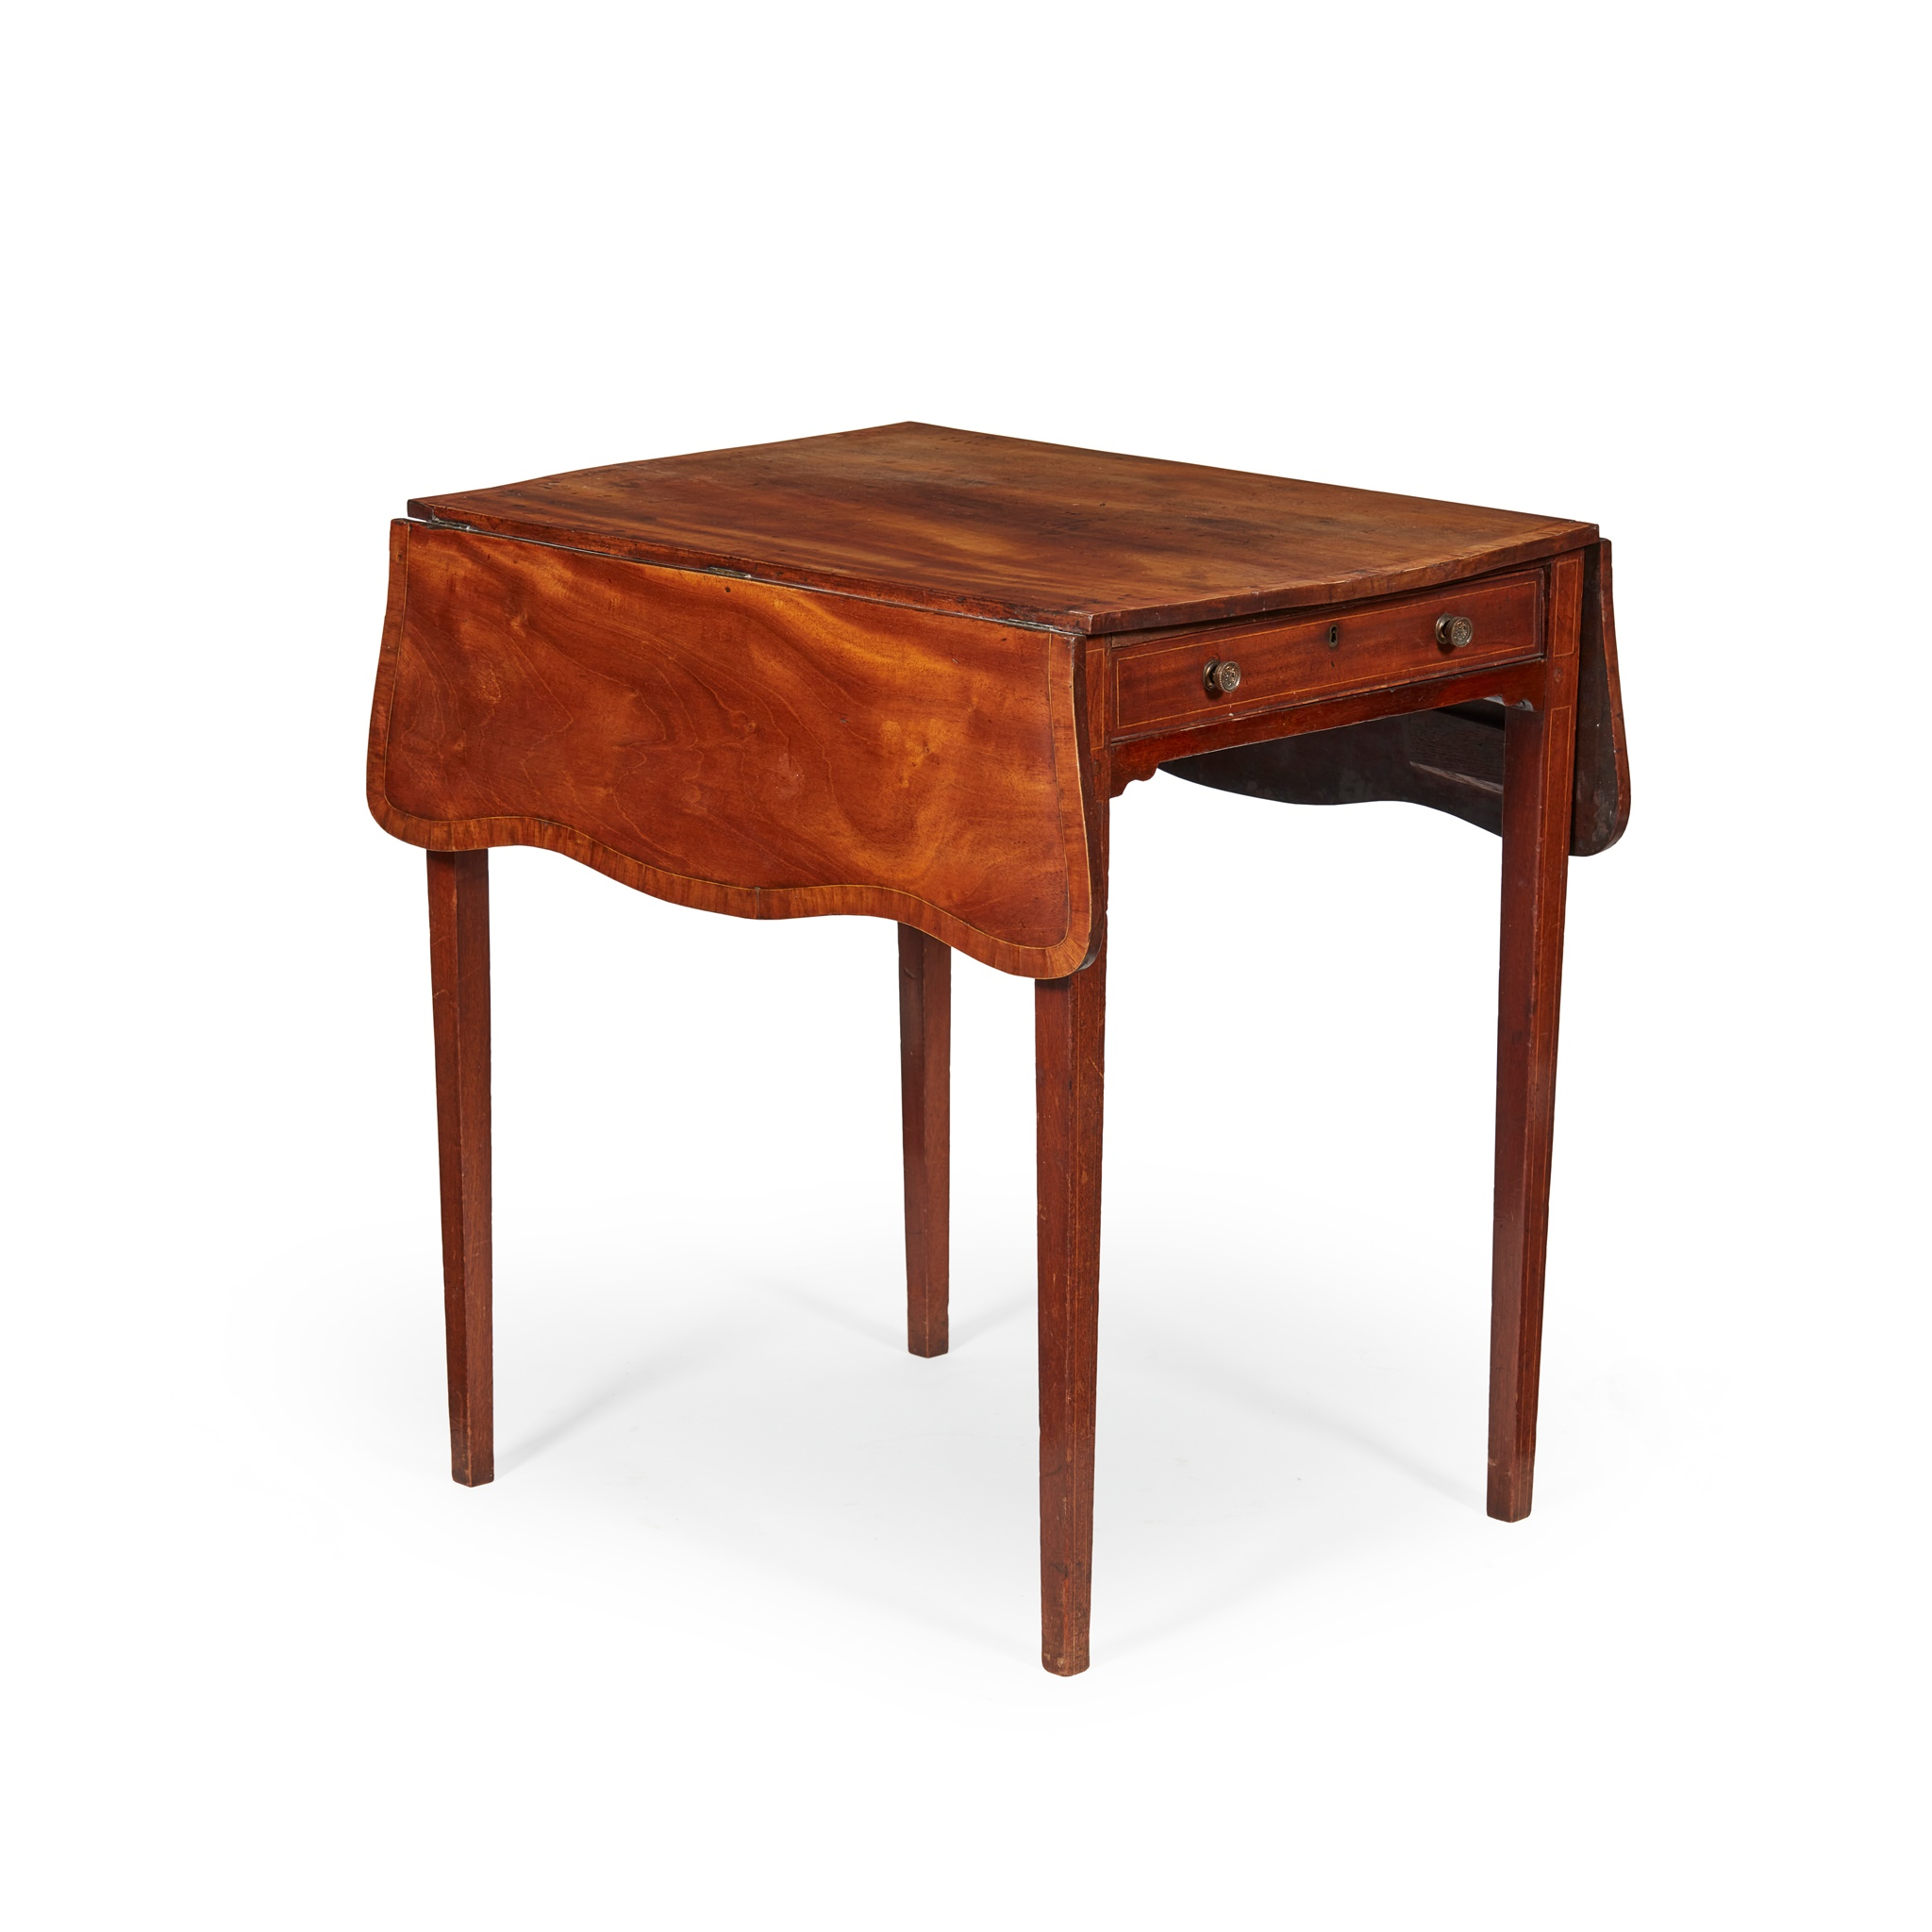 GEORGE II MAHOGANY AND SATINWOOD PEMBROKE TABLE LATE 18TH CENTURY